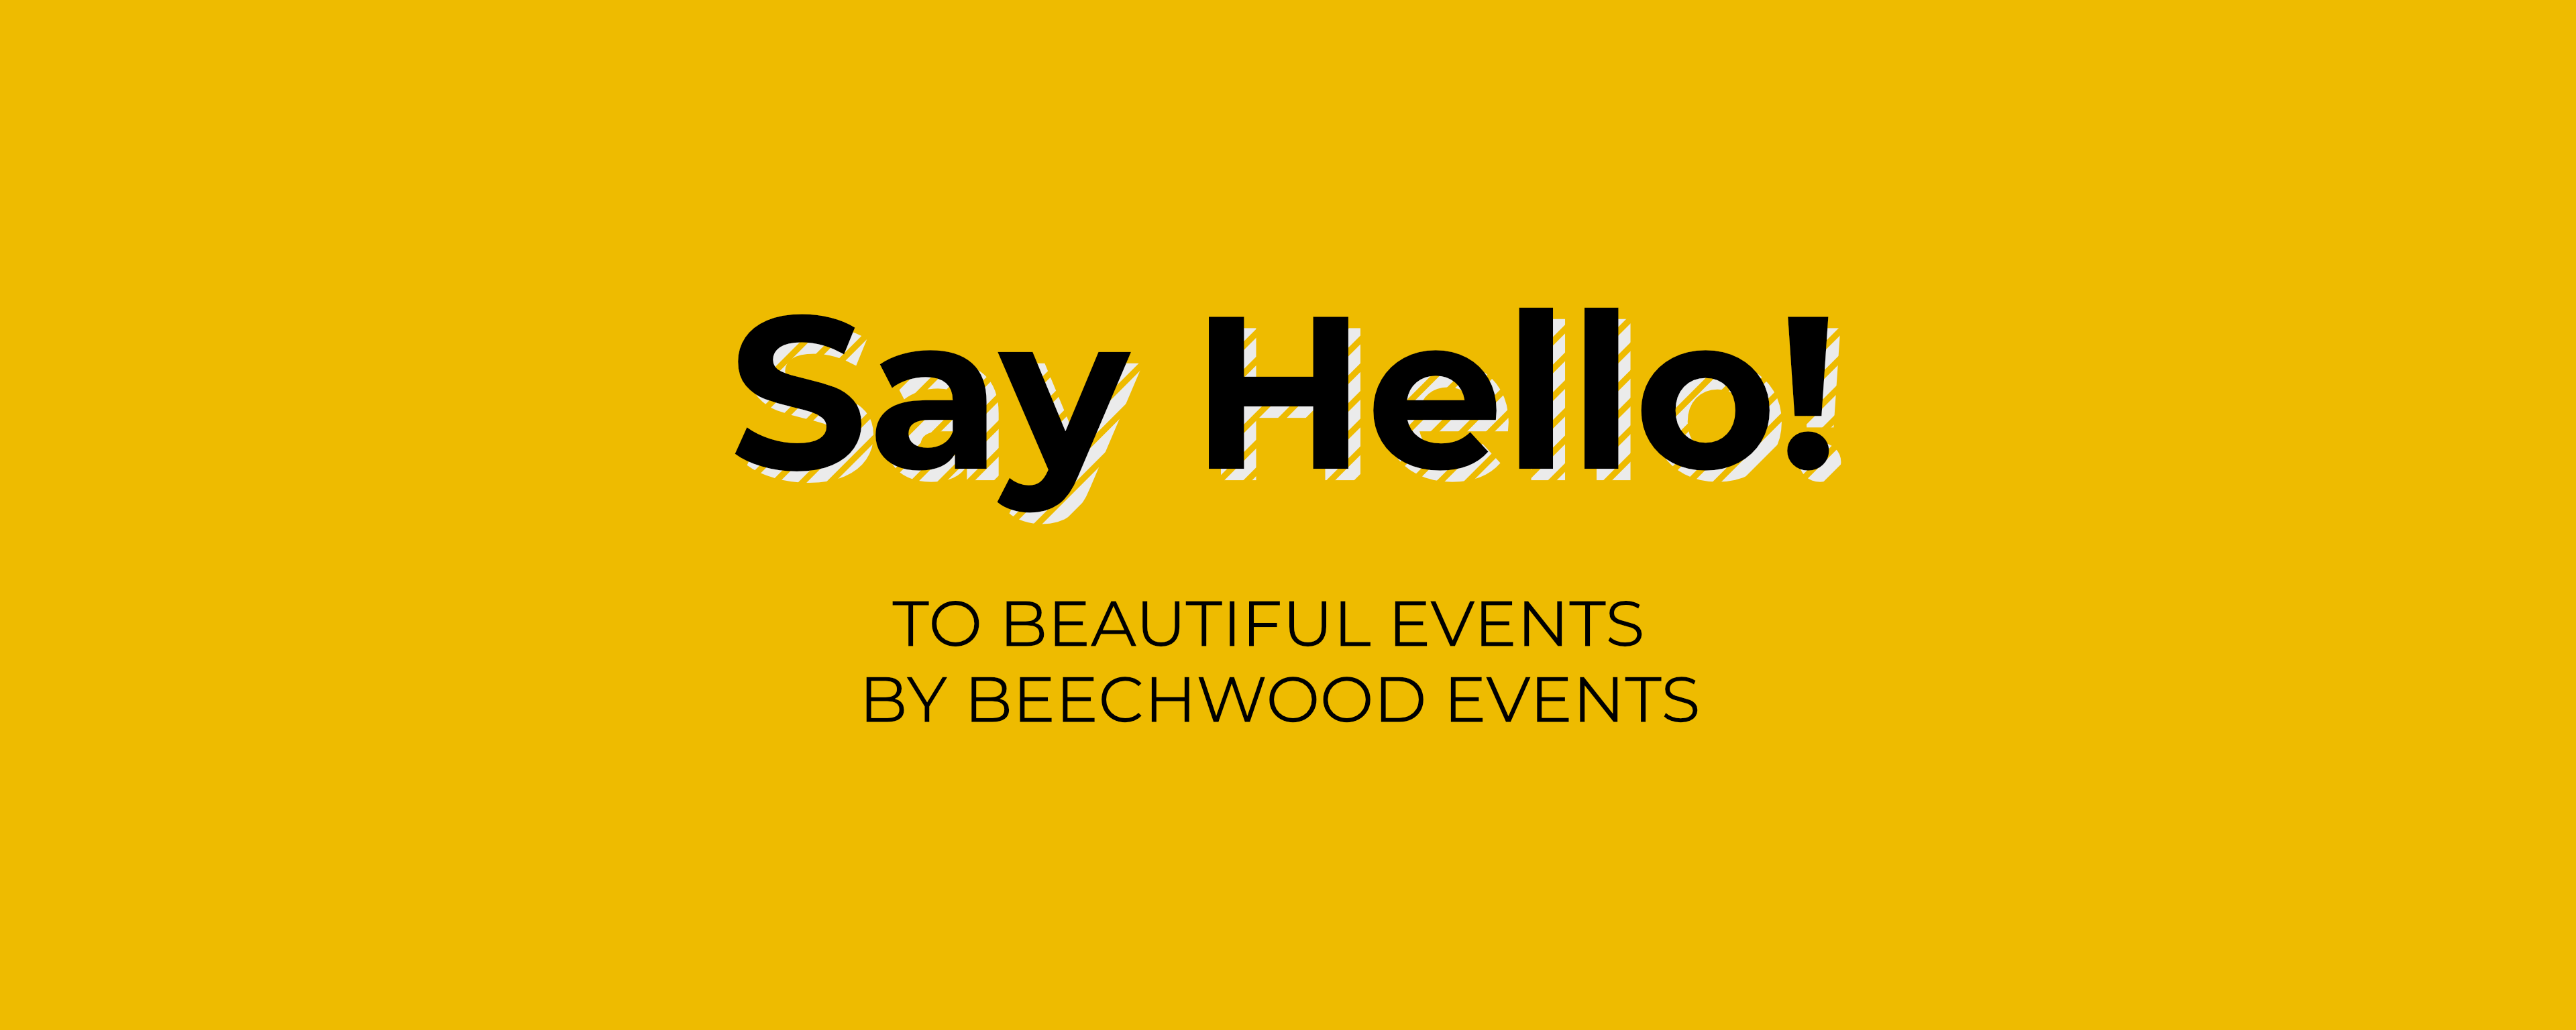 Image reads: Say hello! To beautiful events by Beechwood Events